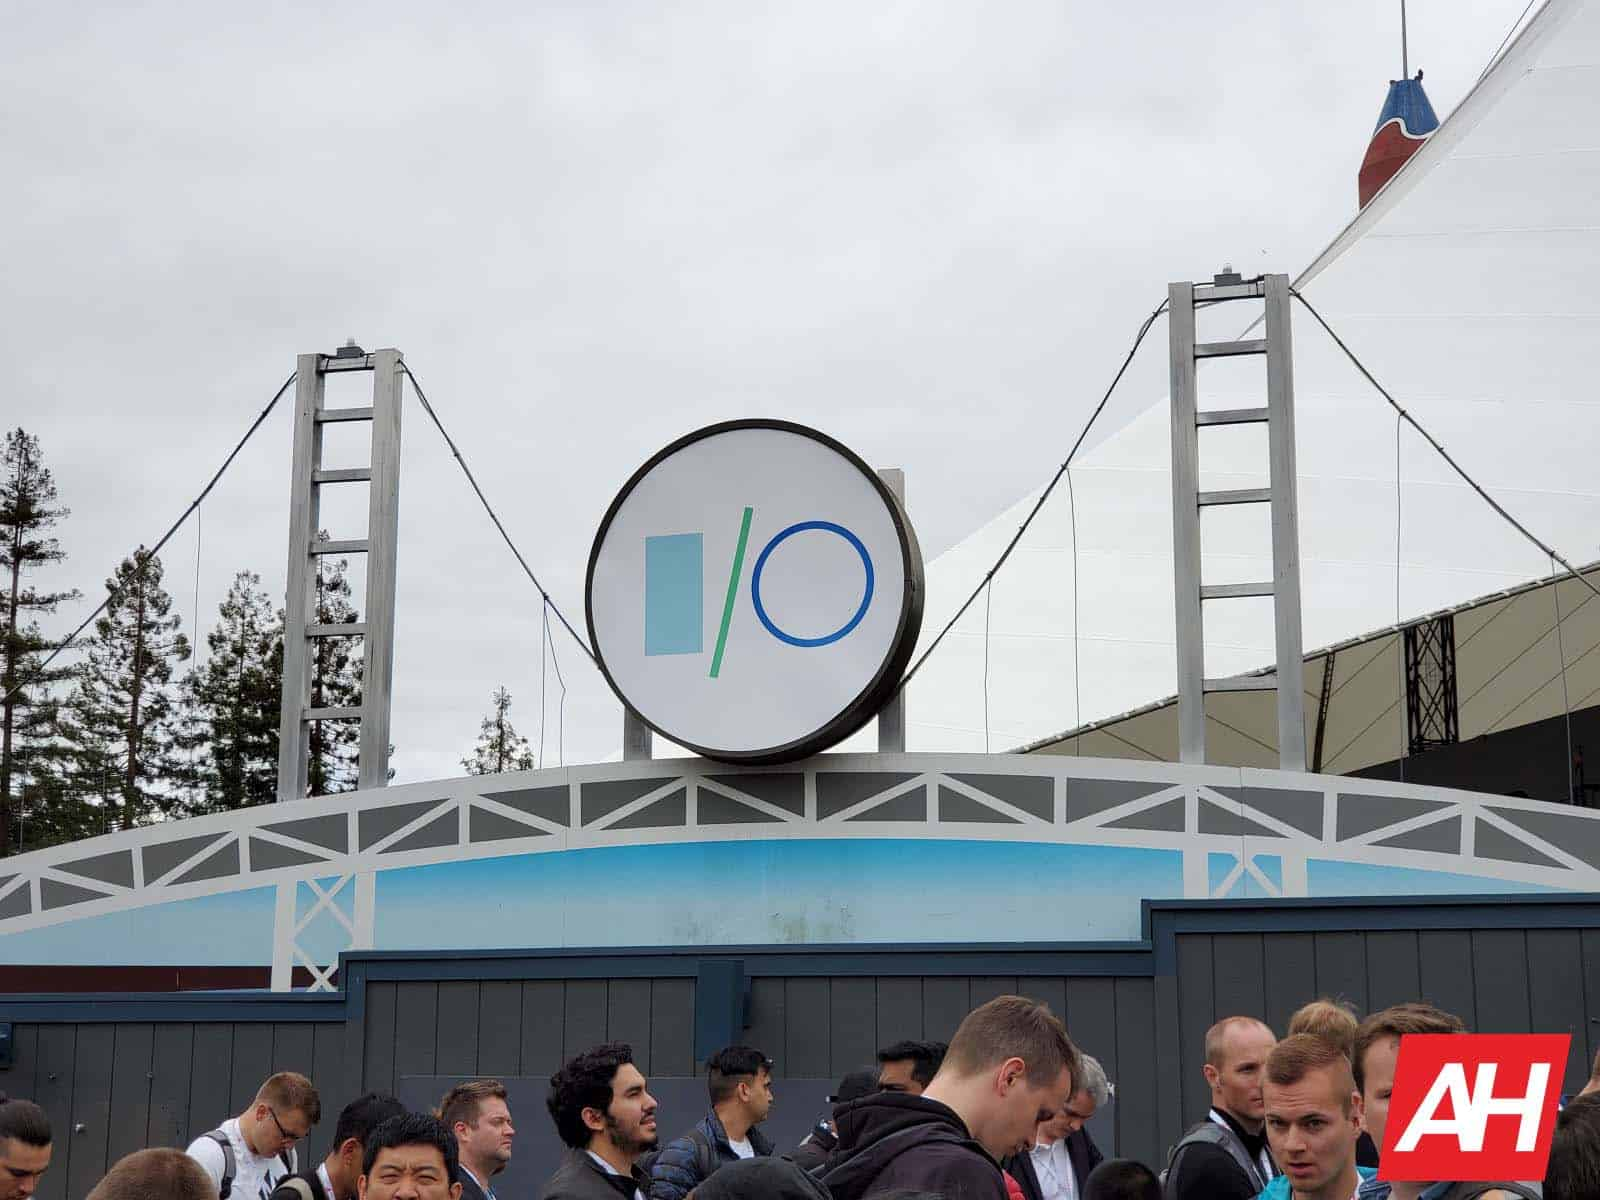 Google IO 2019 Sign AH 10